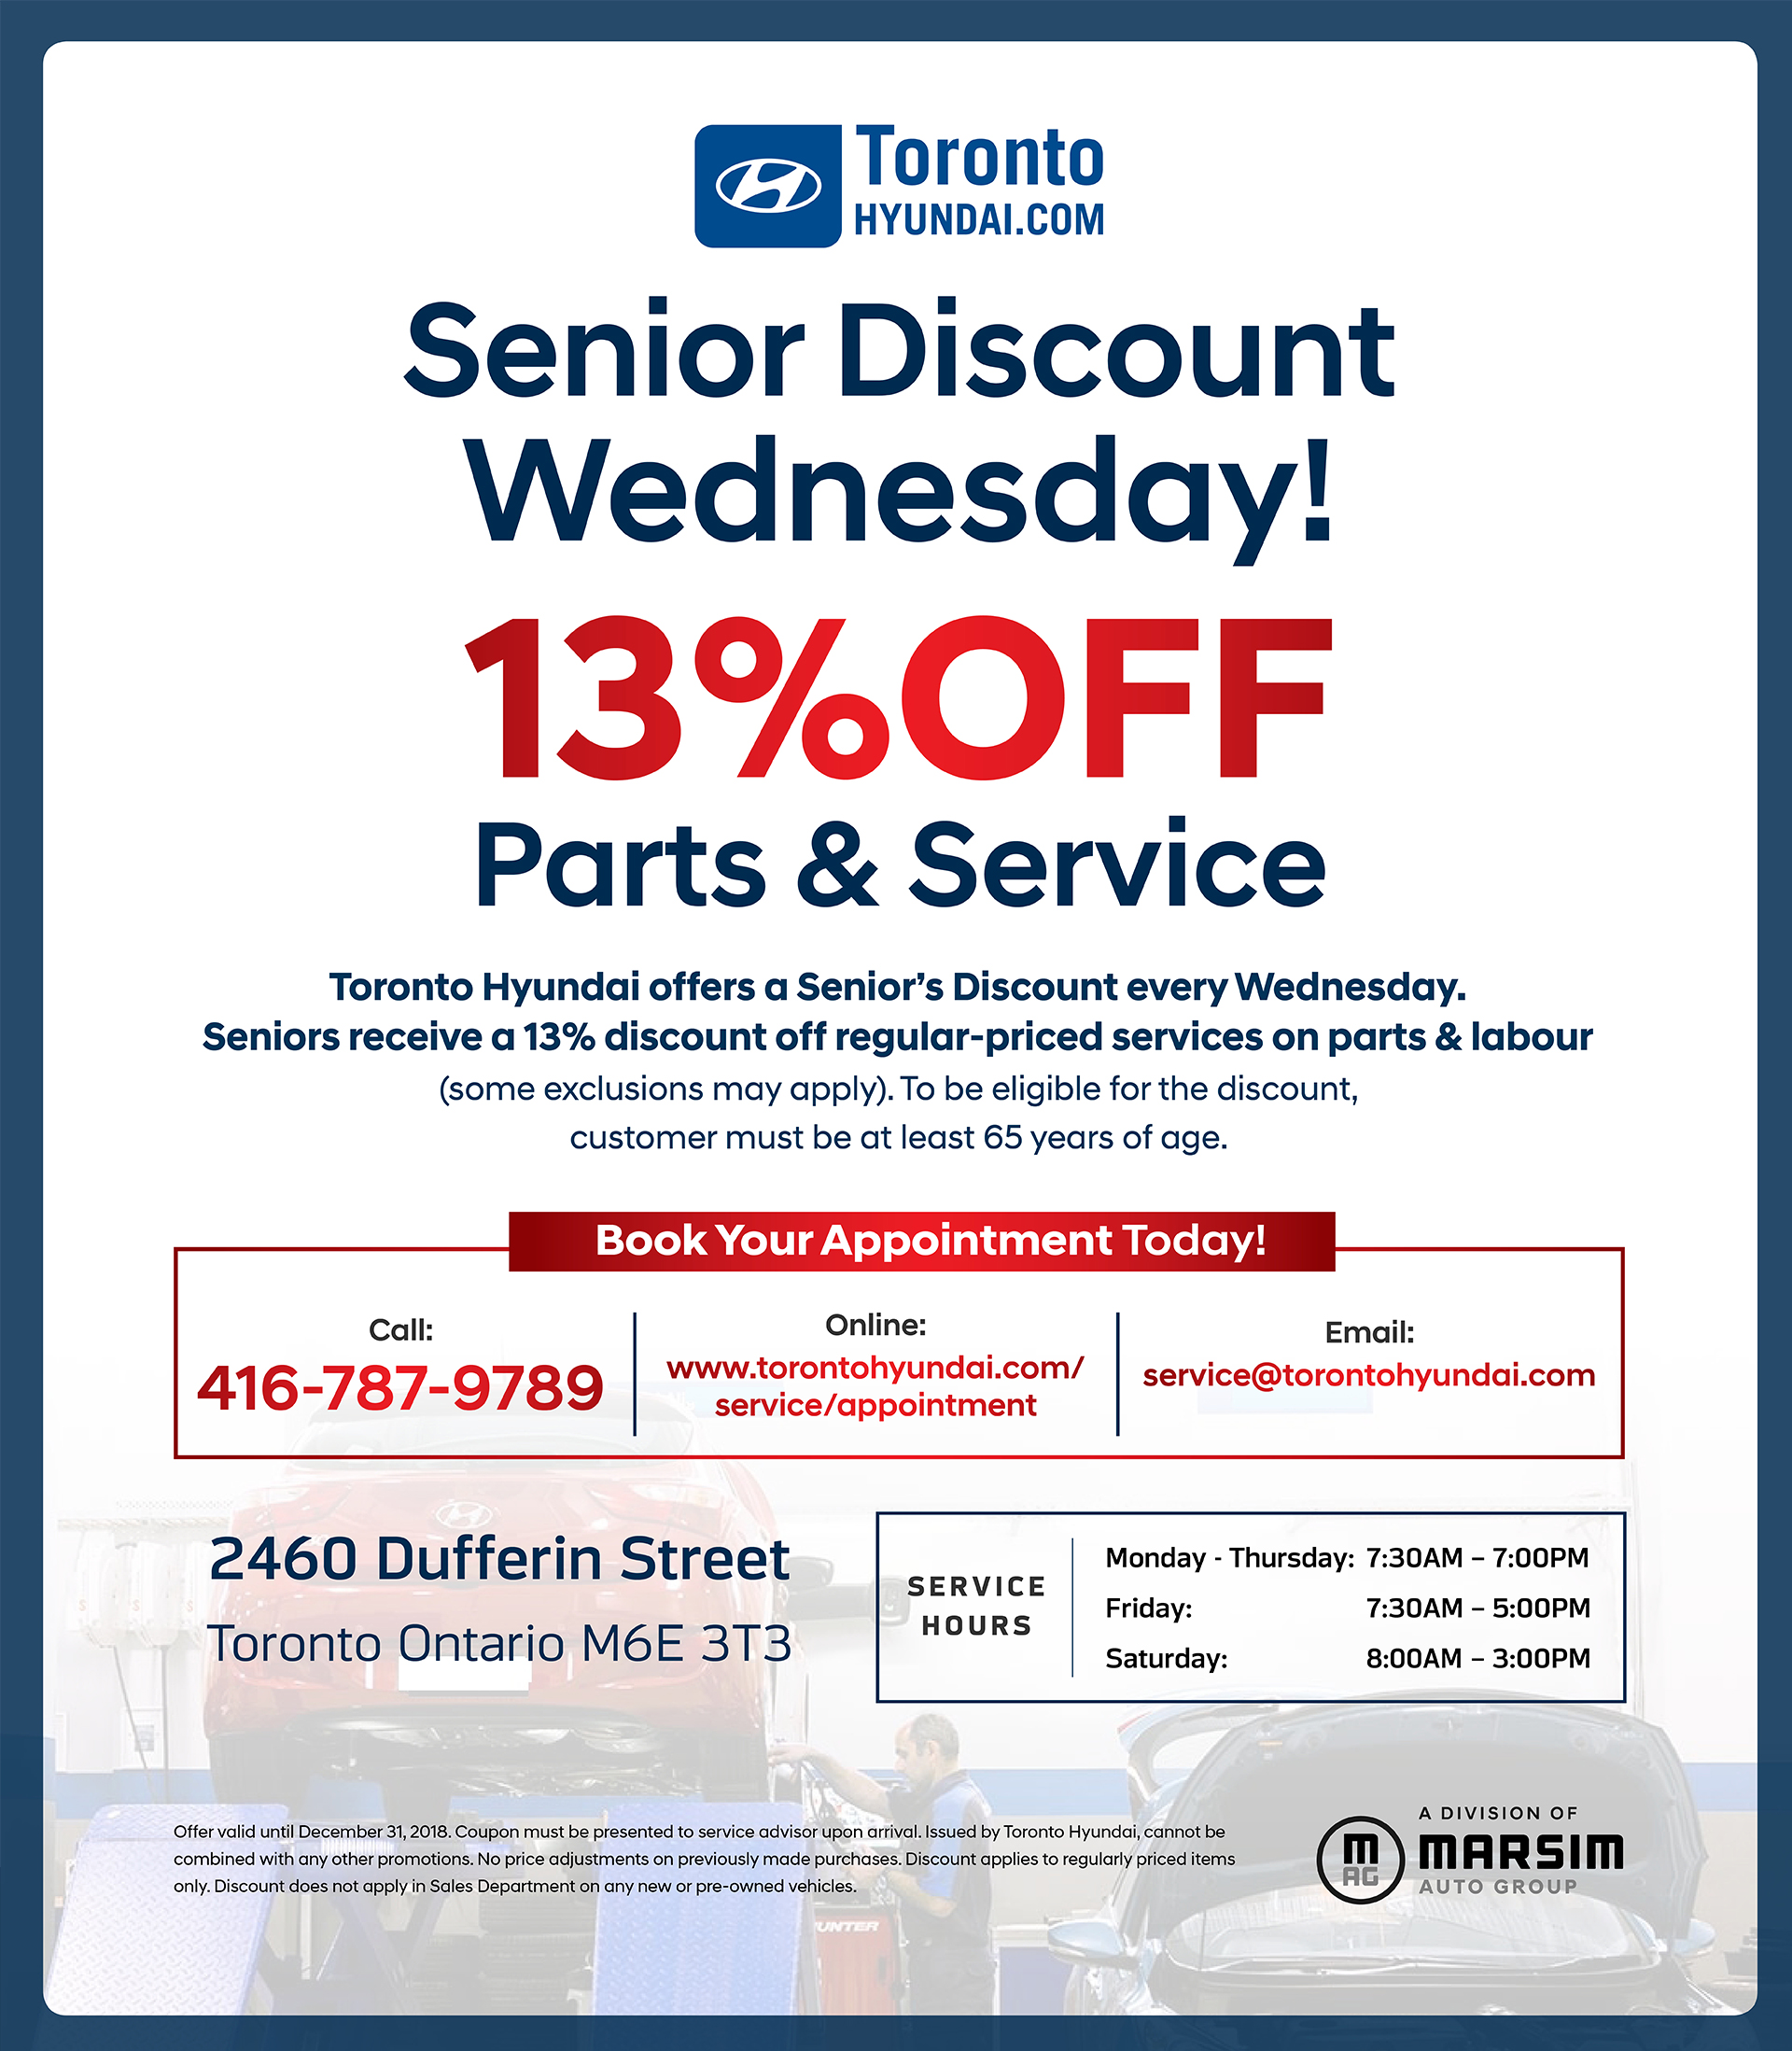 17730-TH-Nov-Senior-Discount-Landing-Page